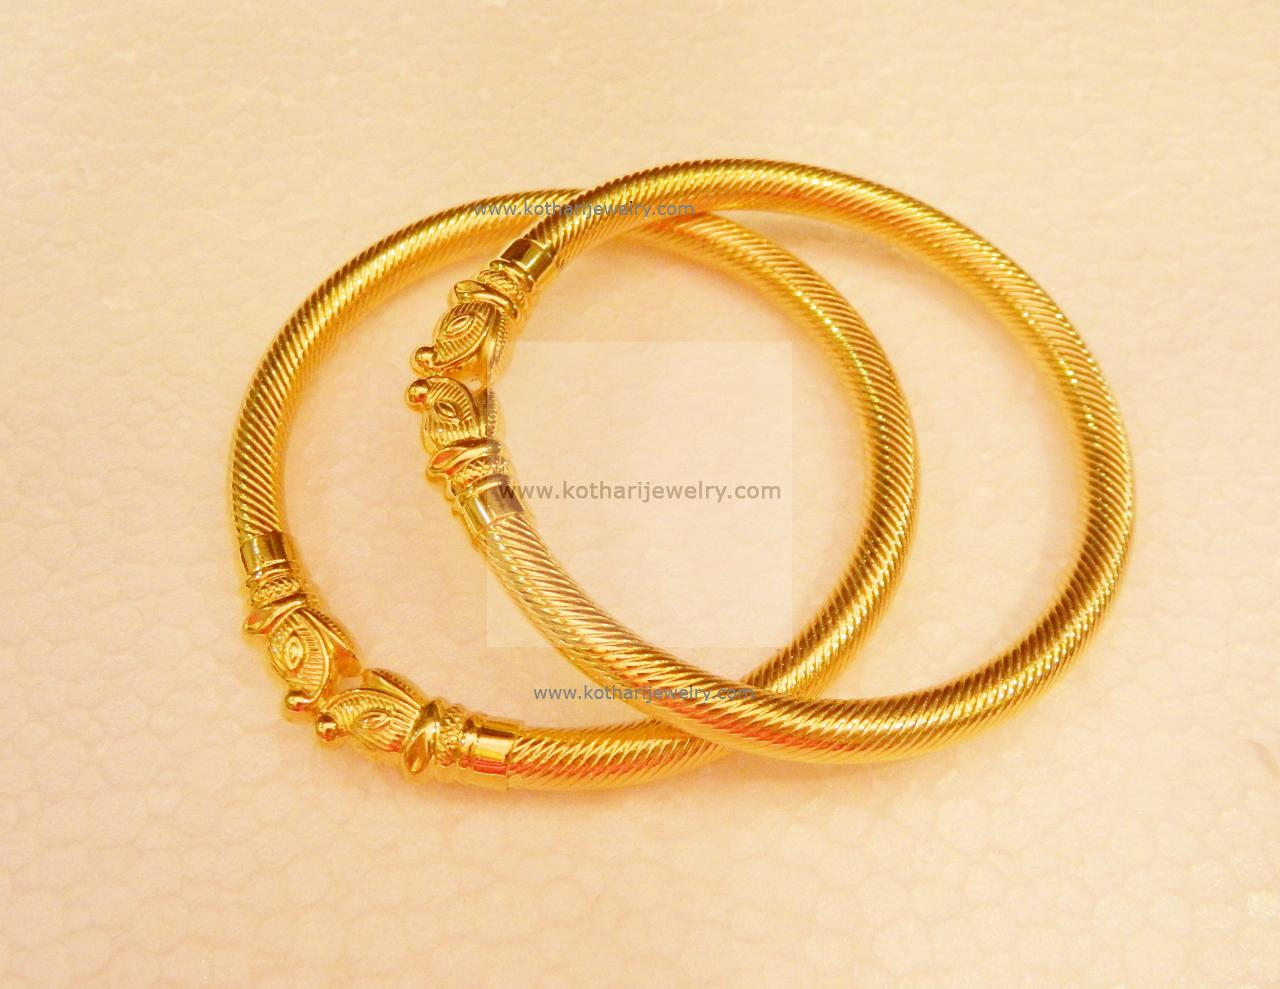 bracelets india jewelery shamsheedas pinterest best bangles uncut karat kangan ethnic gold on diamond jewelry indian jewellery bangle images pakistani